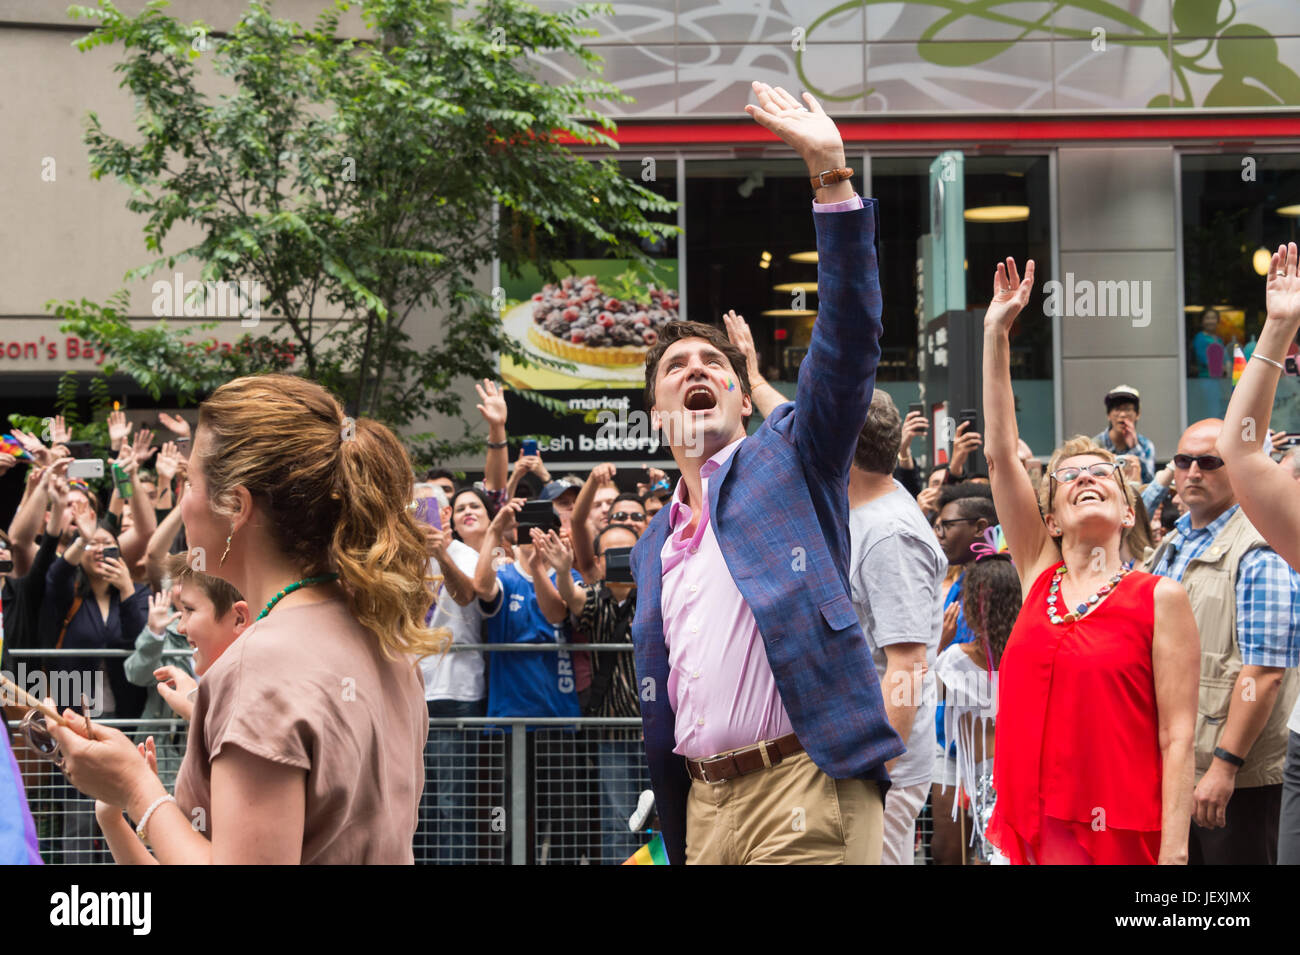 Toronto, Canada. 25 June 2017. Canadian Prime Minister Justin Trudeau and Ontario PM ontario prime minister during - Stock Image